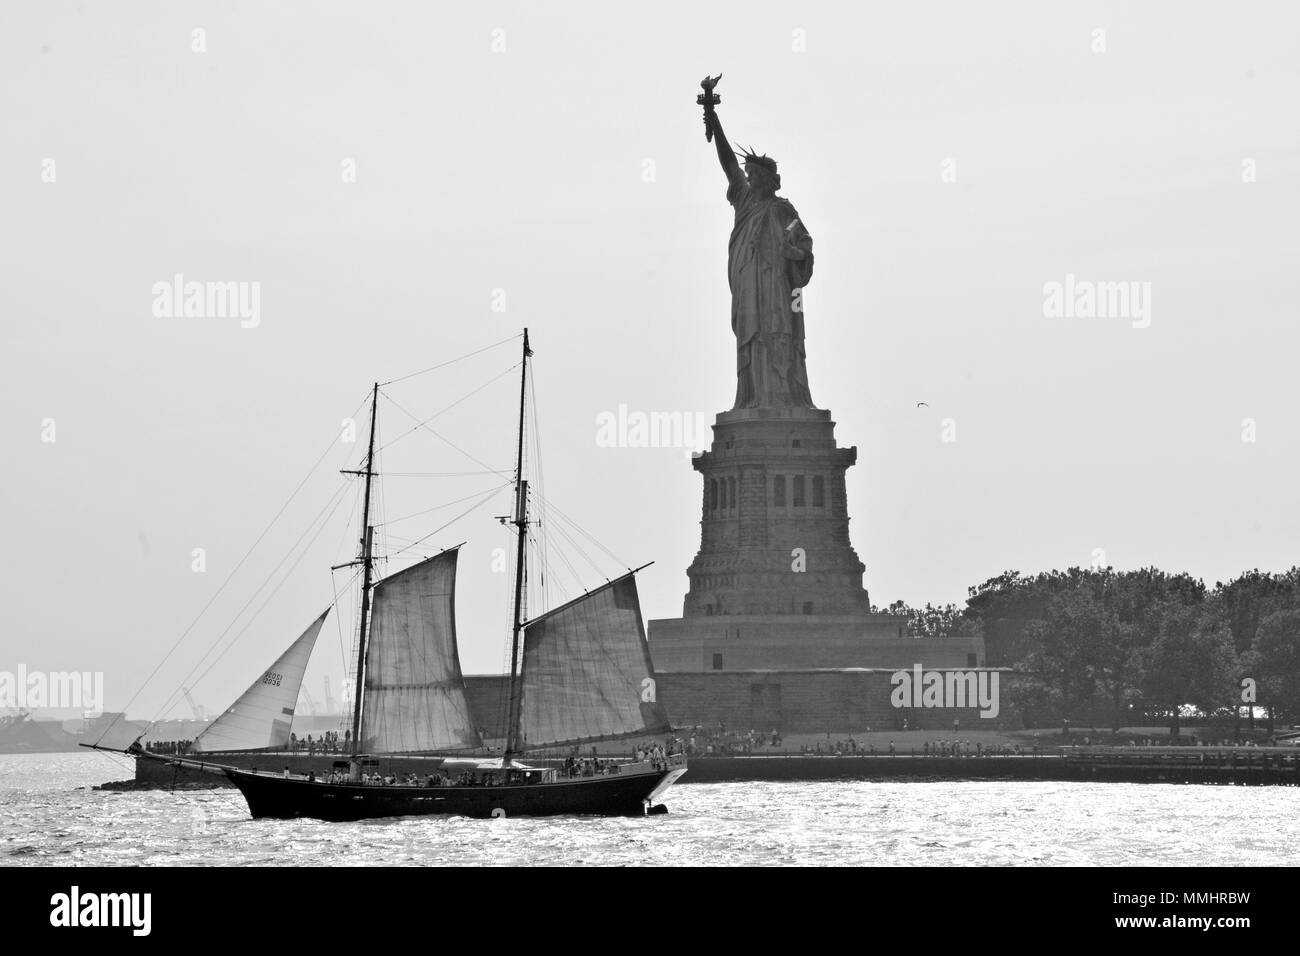 An old sailboat sails in front of the Statue of Liberty at the entrance of New York Harbor, New York, USA - Stock Image